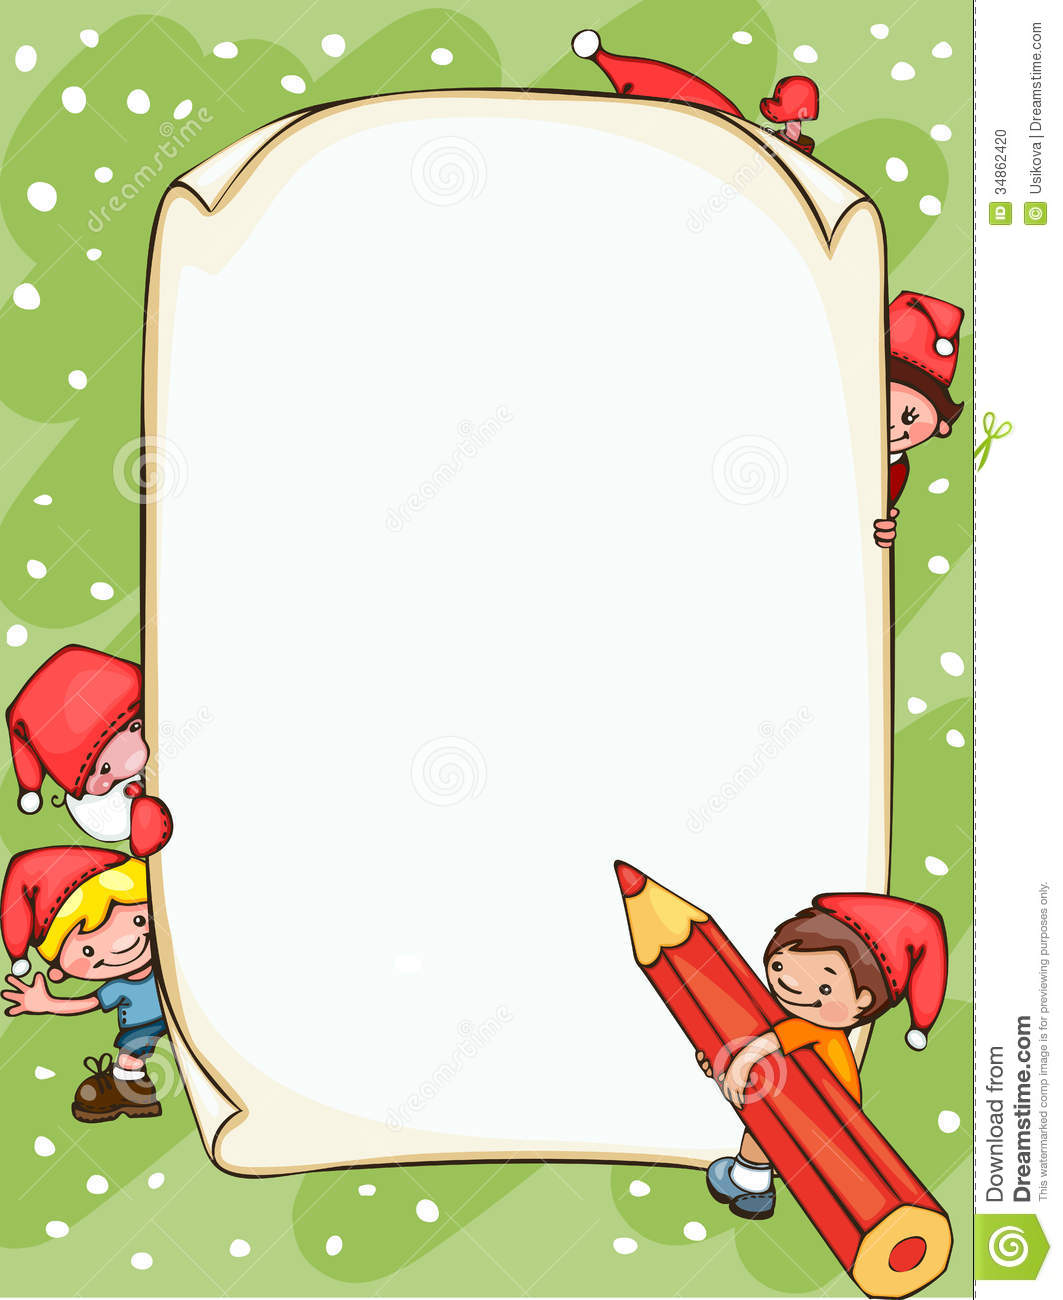 Christmas blank banner with Santa Claus and kids. Place for text.